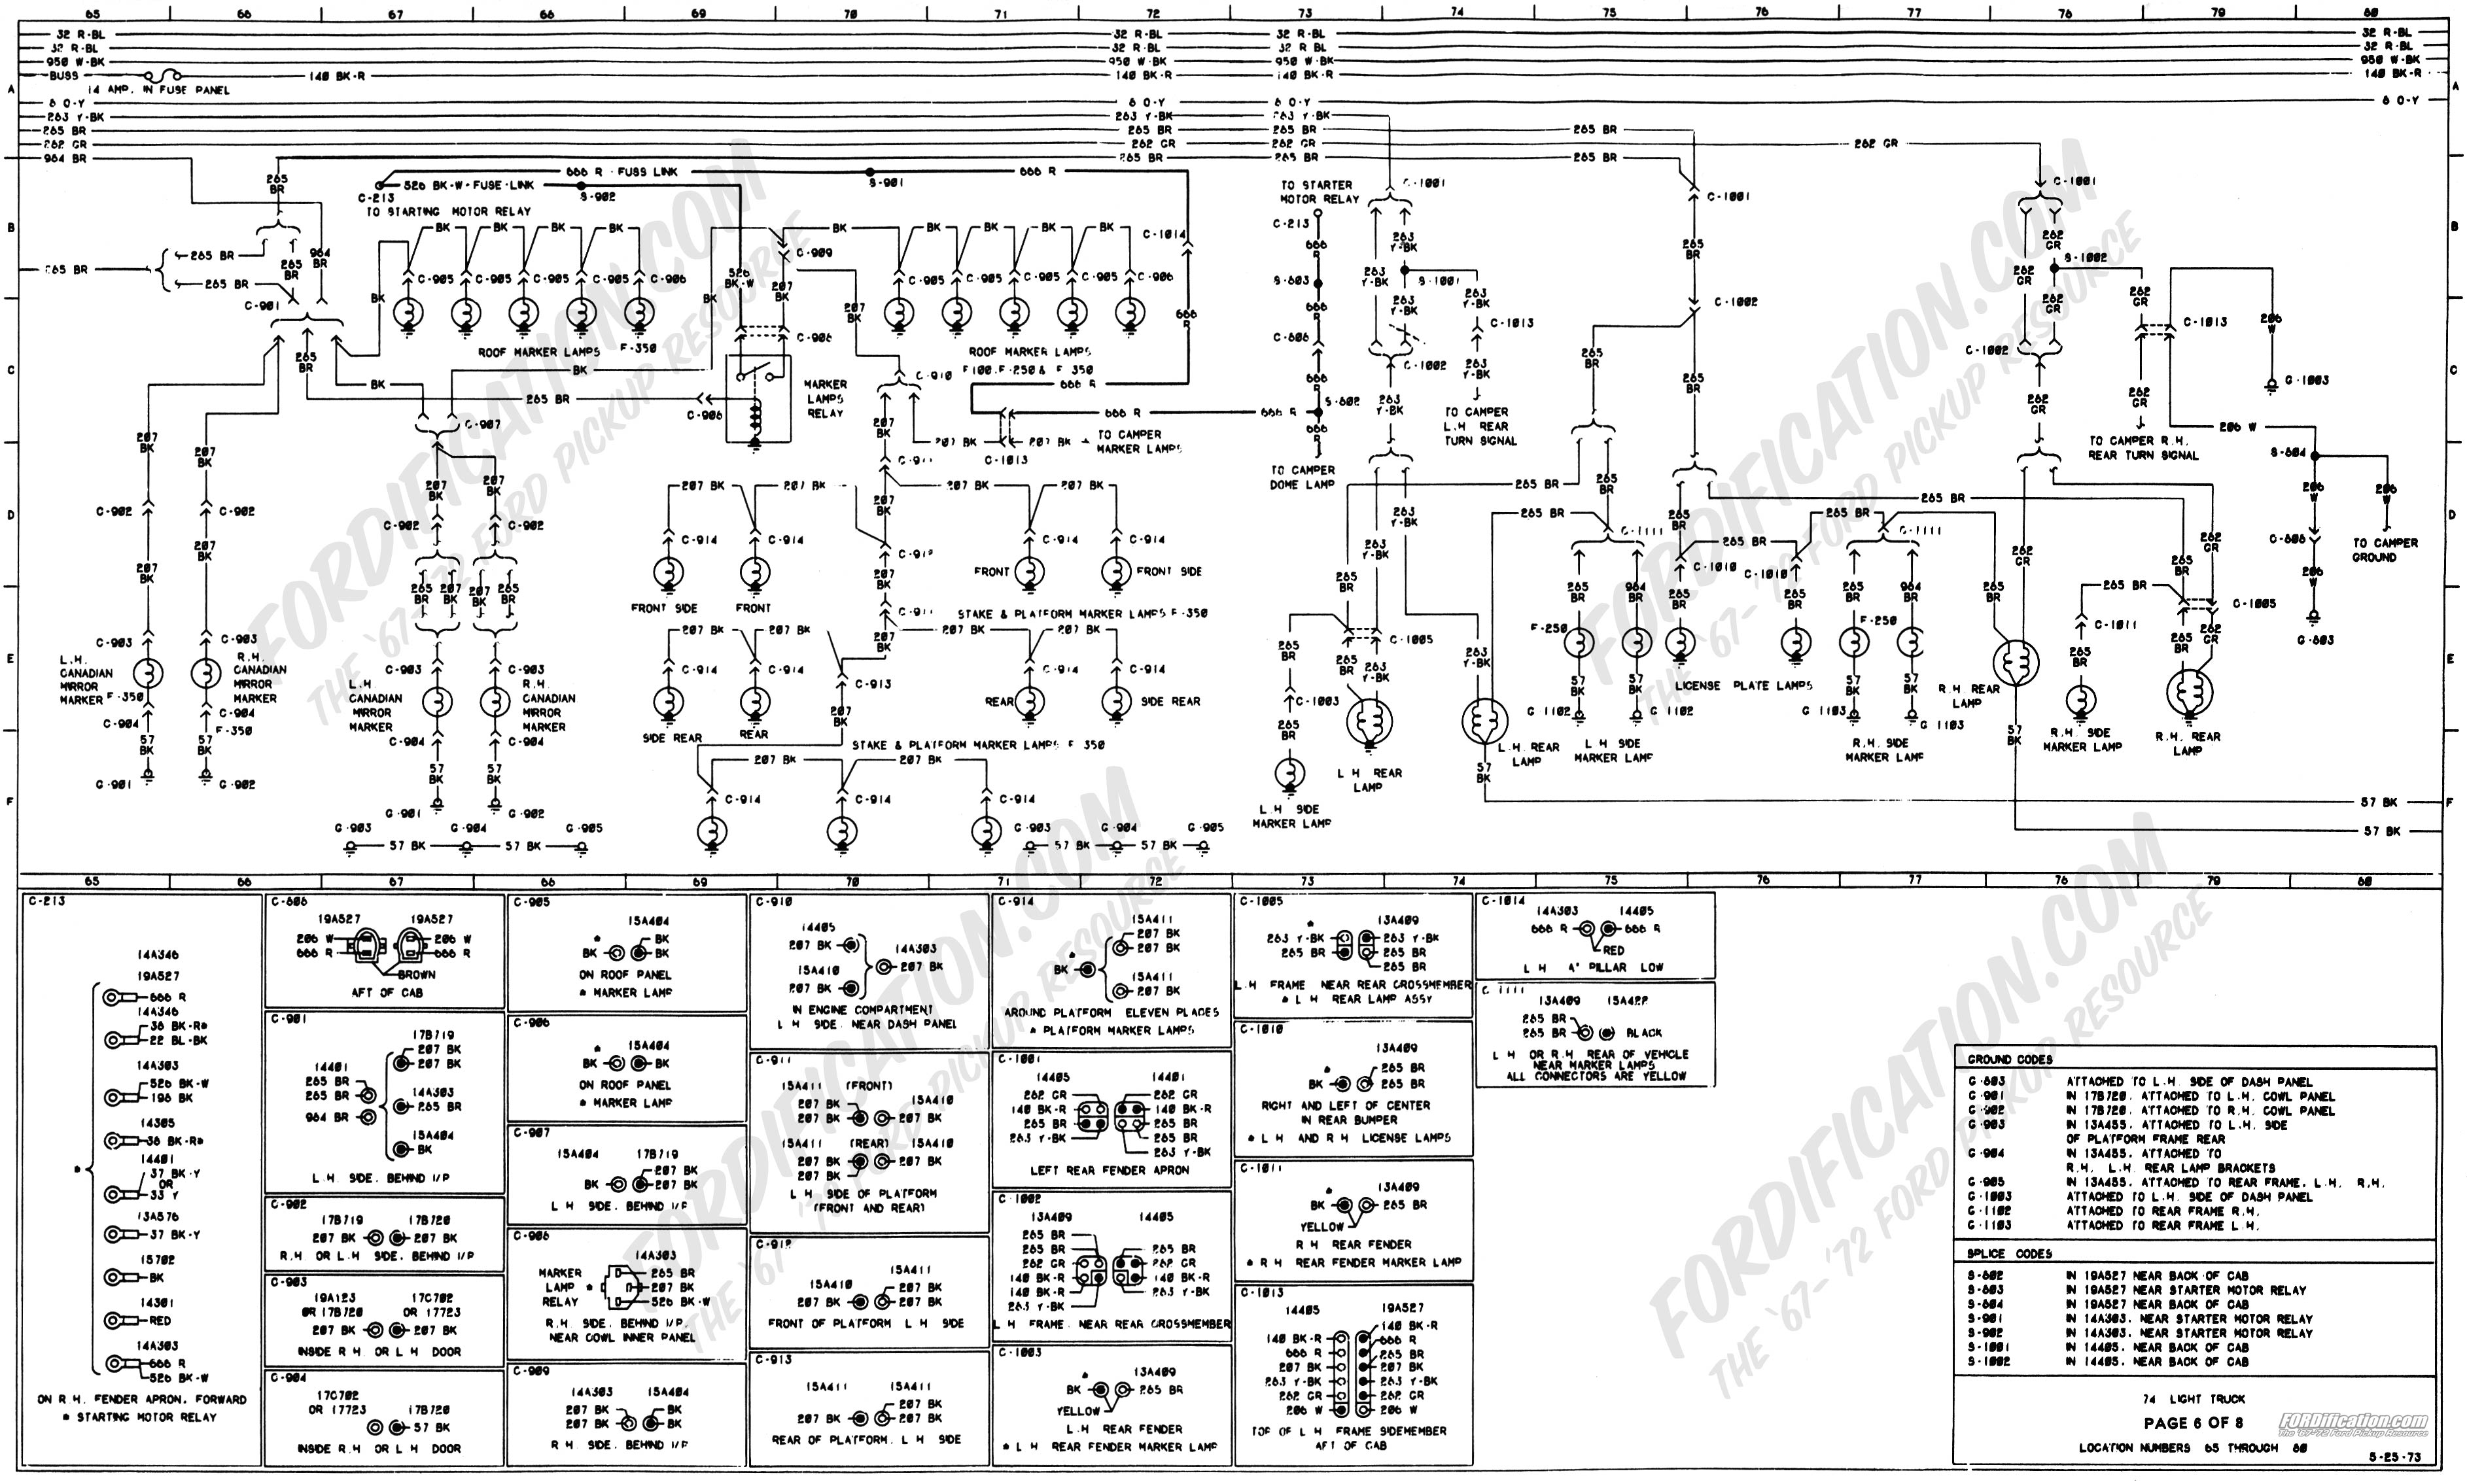 wiring_74master_6of8 1973 1979 ford truck wiring diagrams & schematics fordification net wiring diagram at panicattacktreatment.co